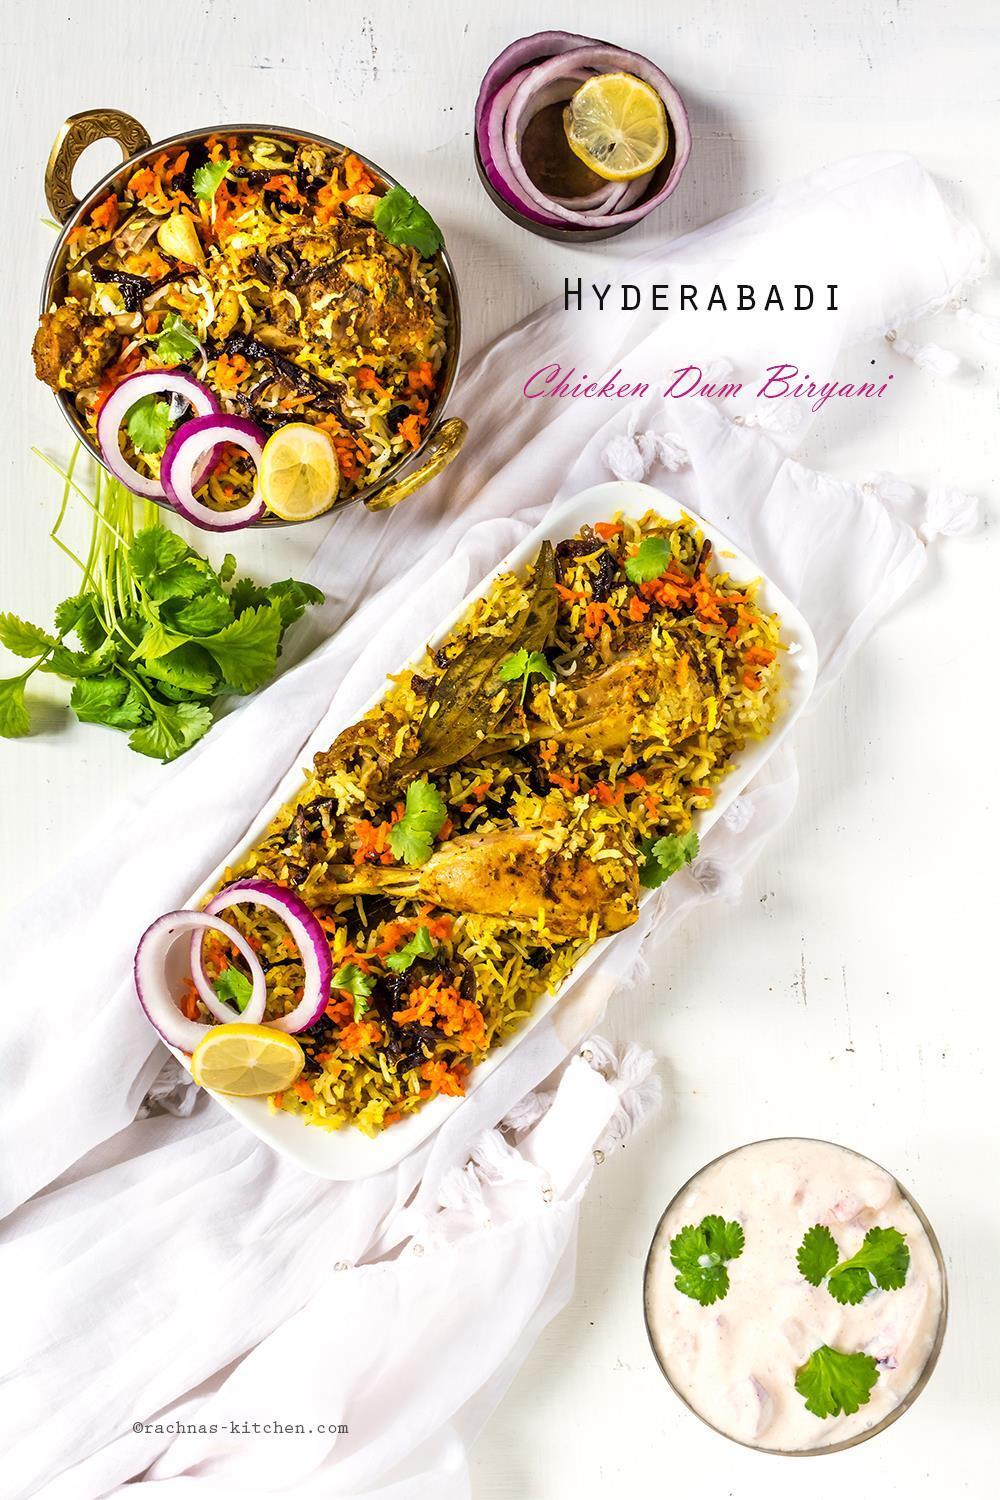 Hyderabadi Chicken Biryani Recipe, Chicken Dum Biryani Recipe